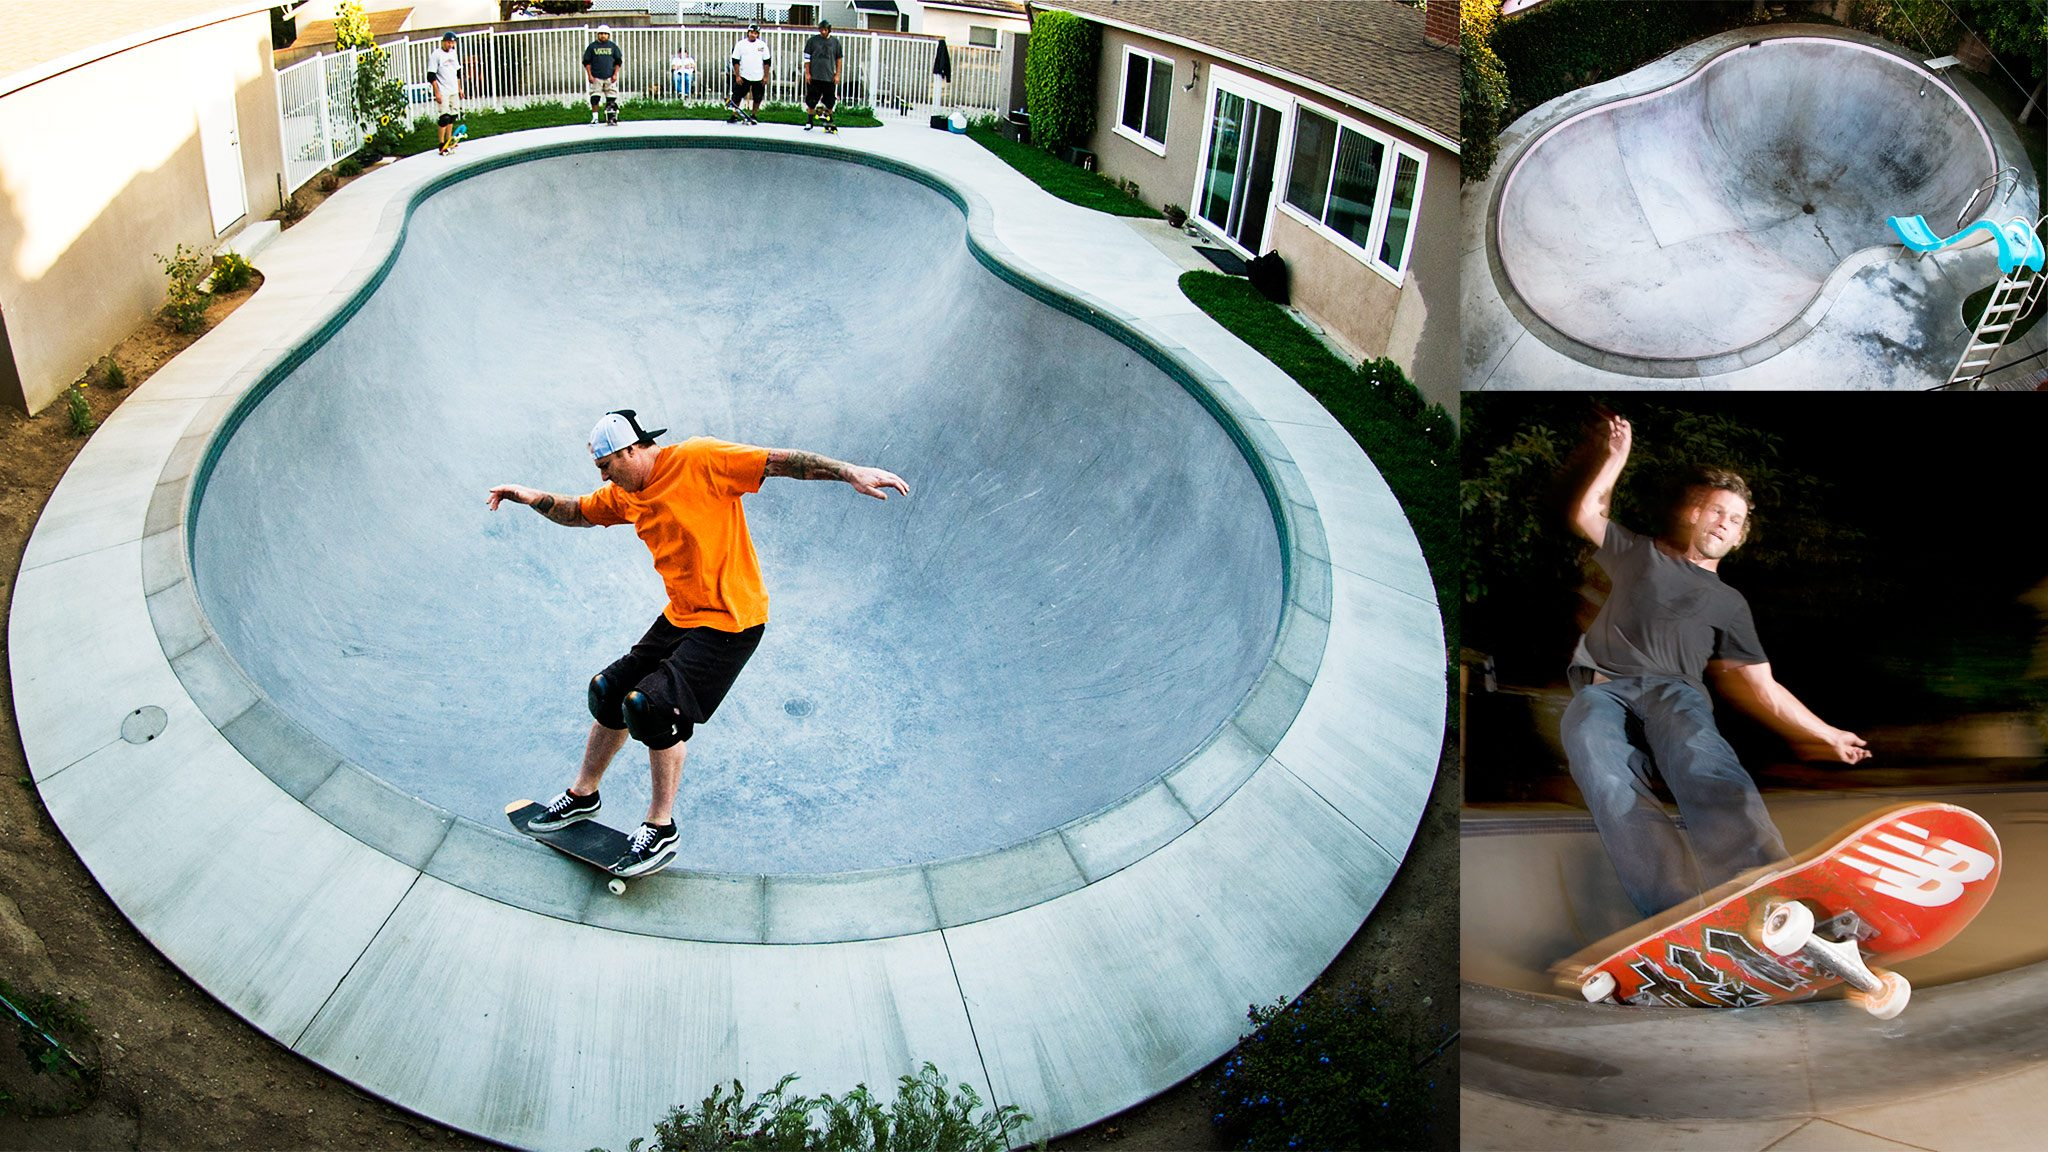 Skateboarding facts